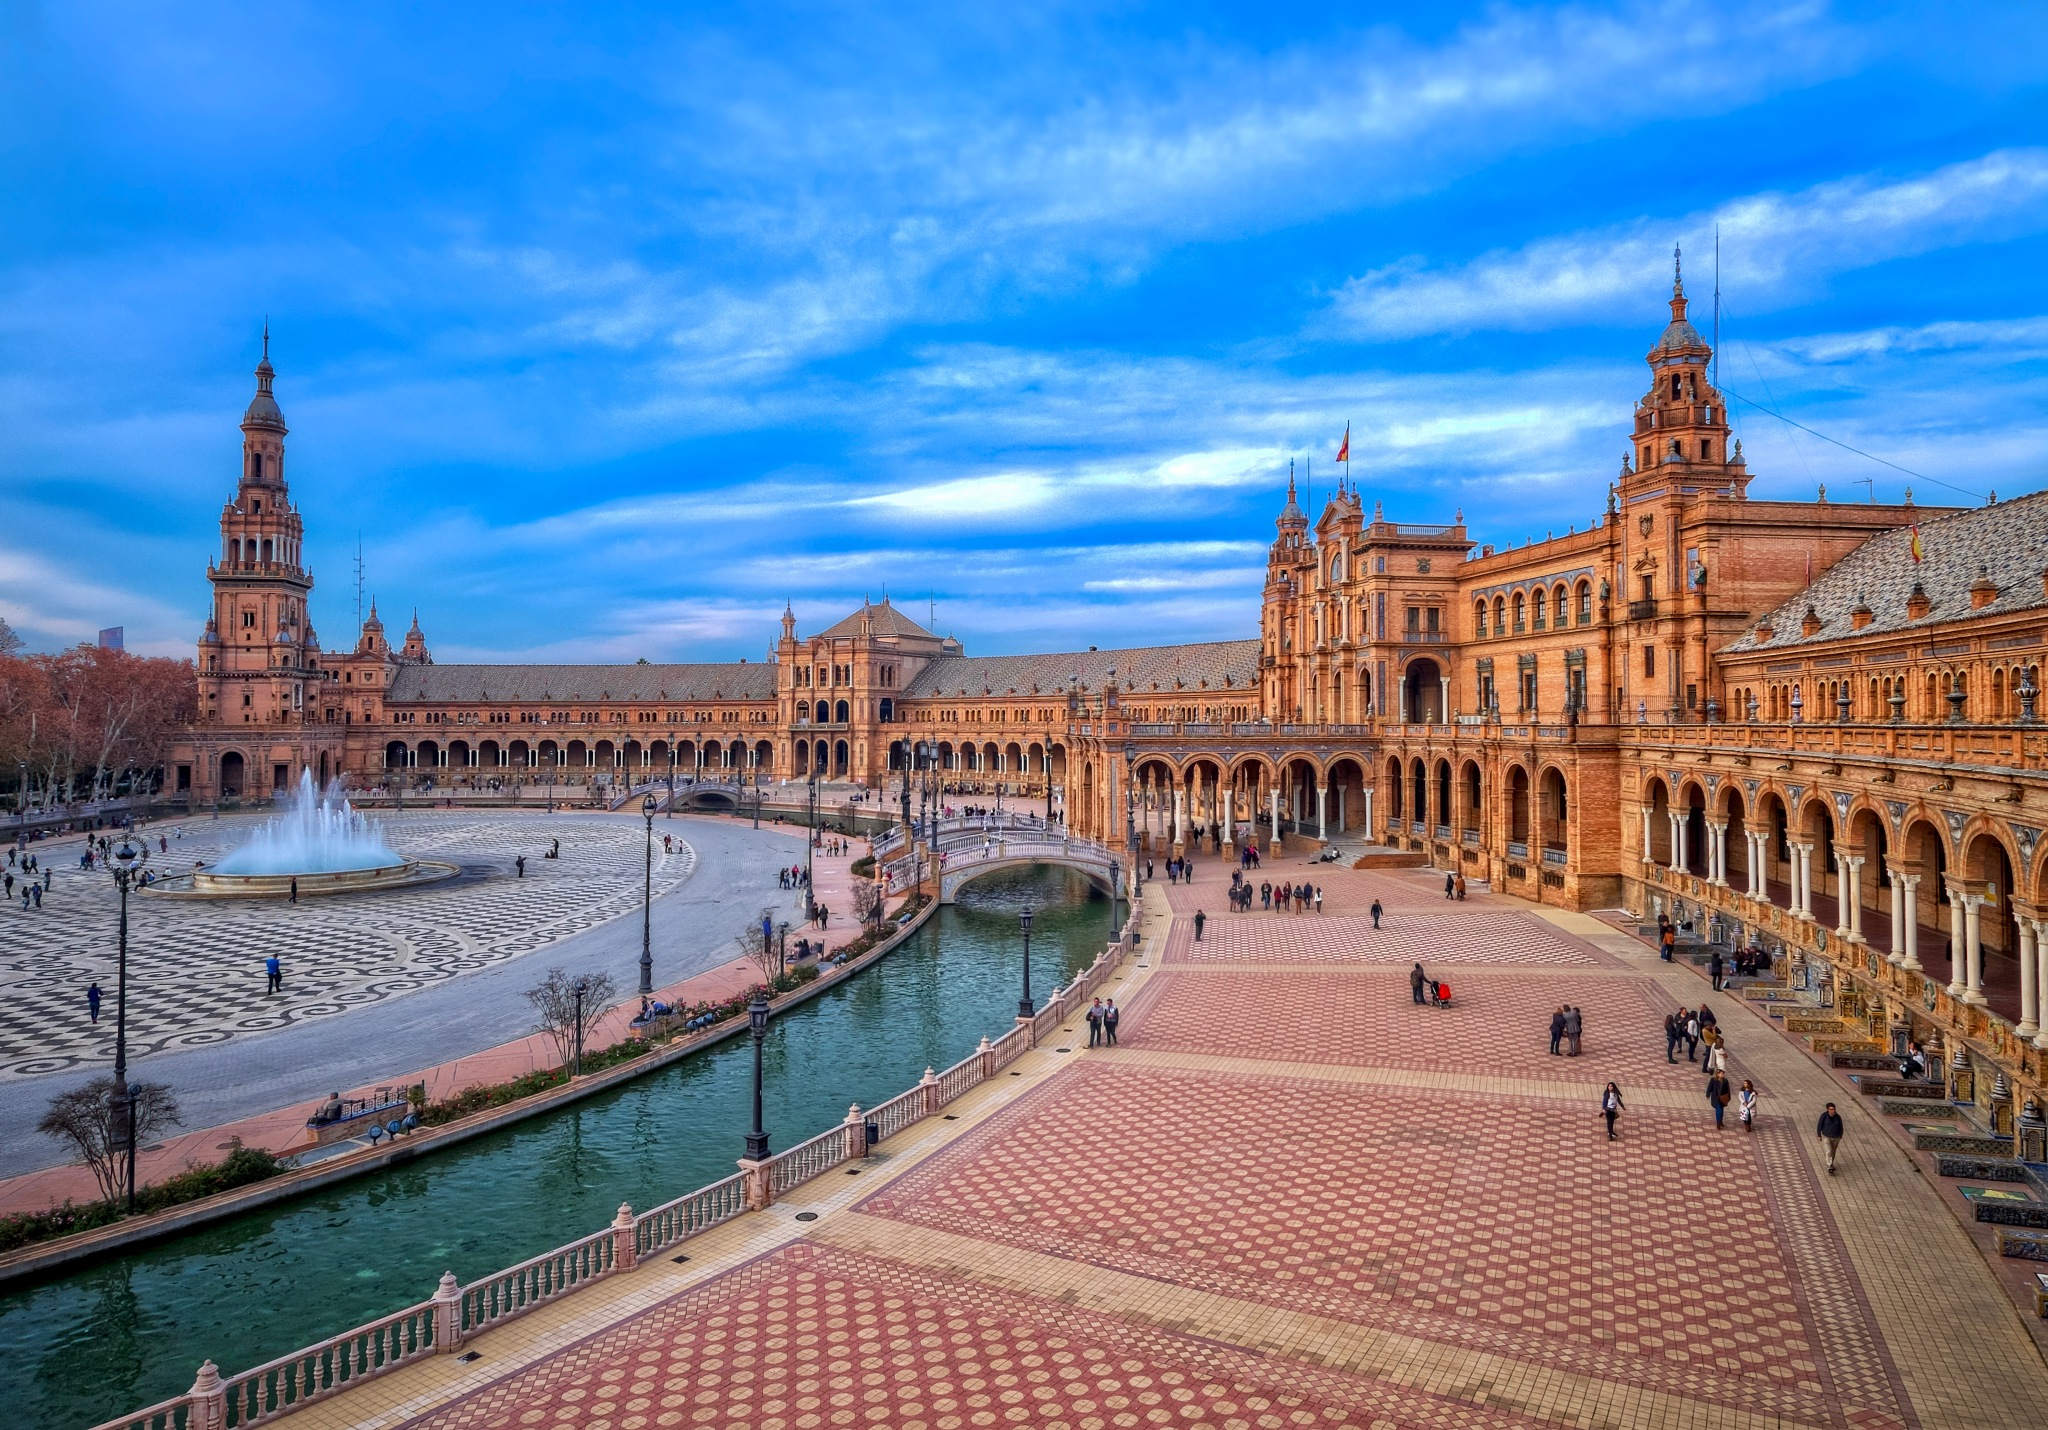 Plaza de España, Seville, Spain by blindthirdeye